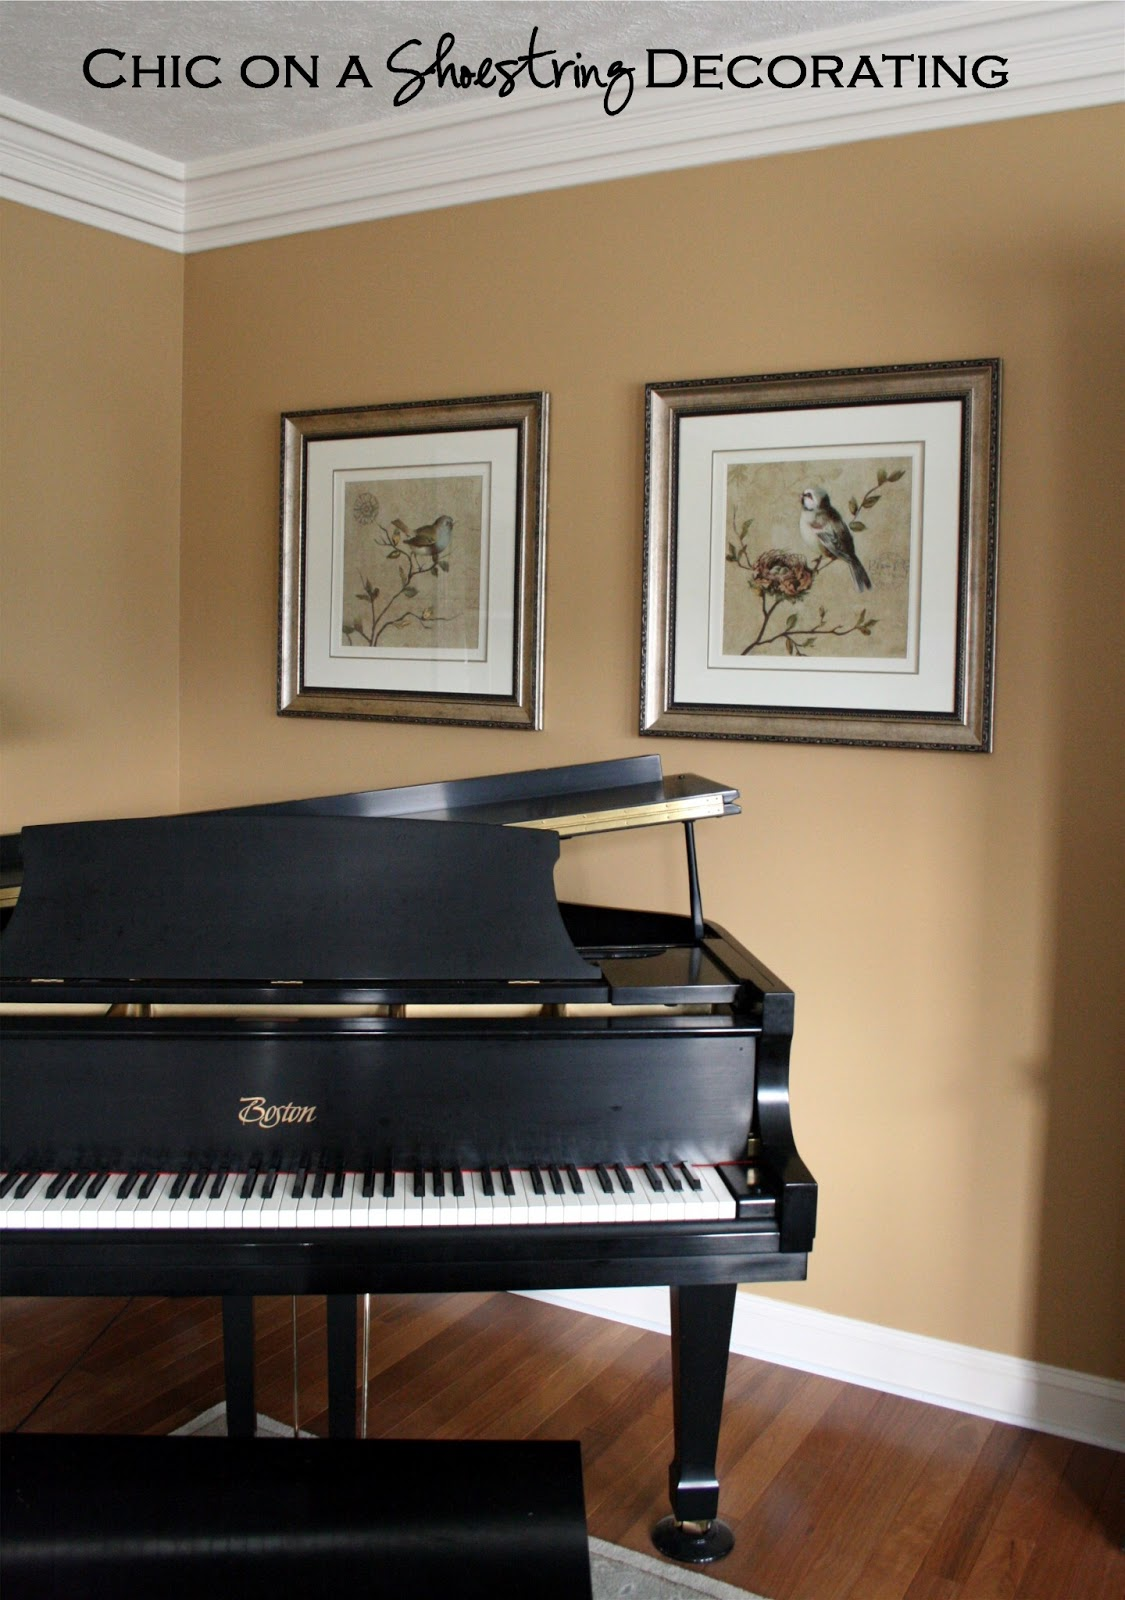 Chic on a shoestring decorating grand piano living room for Small grand piano